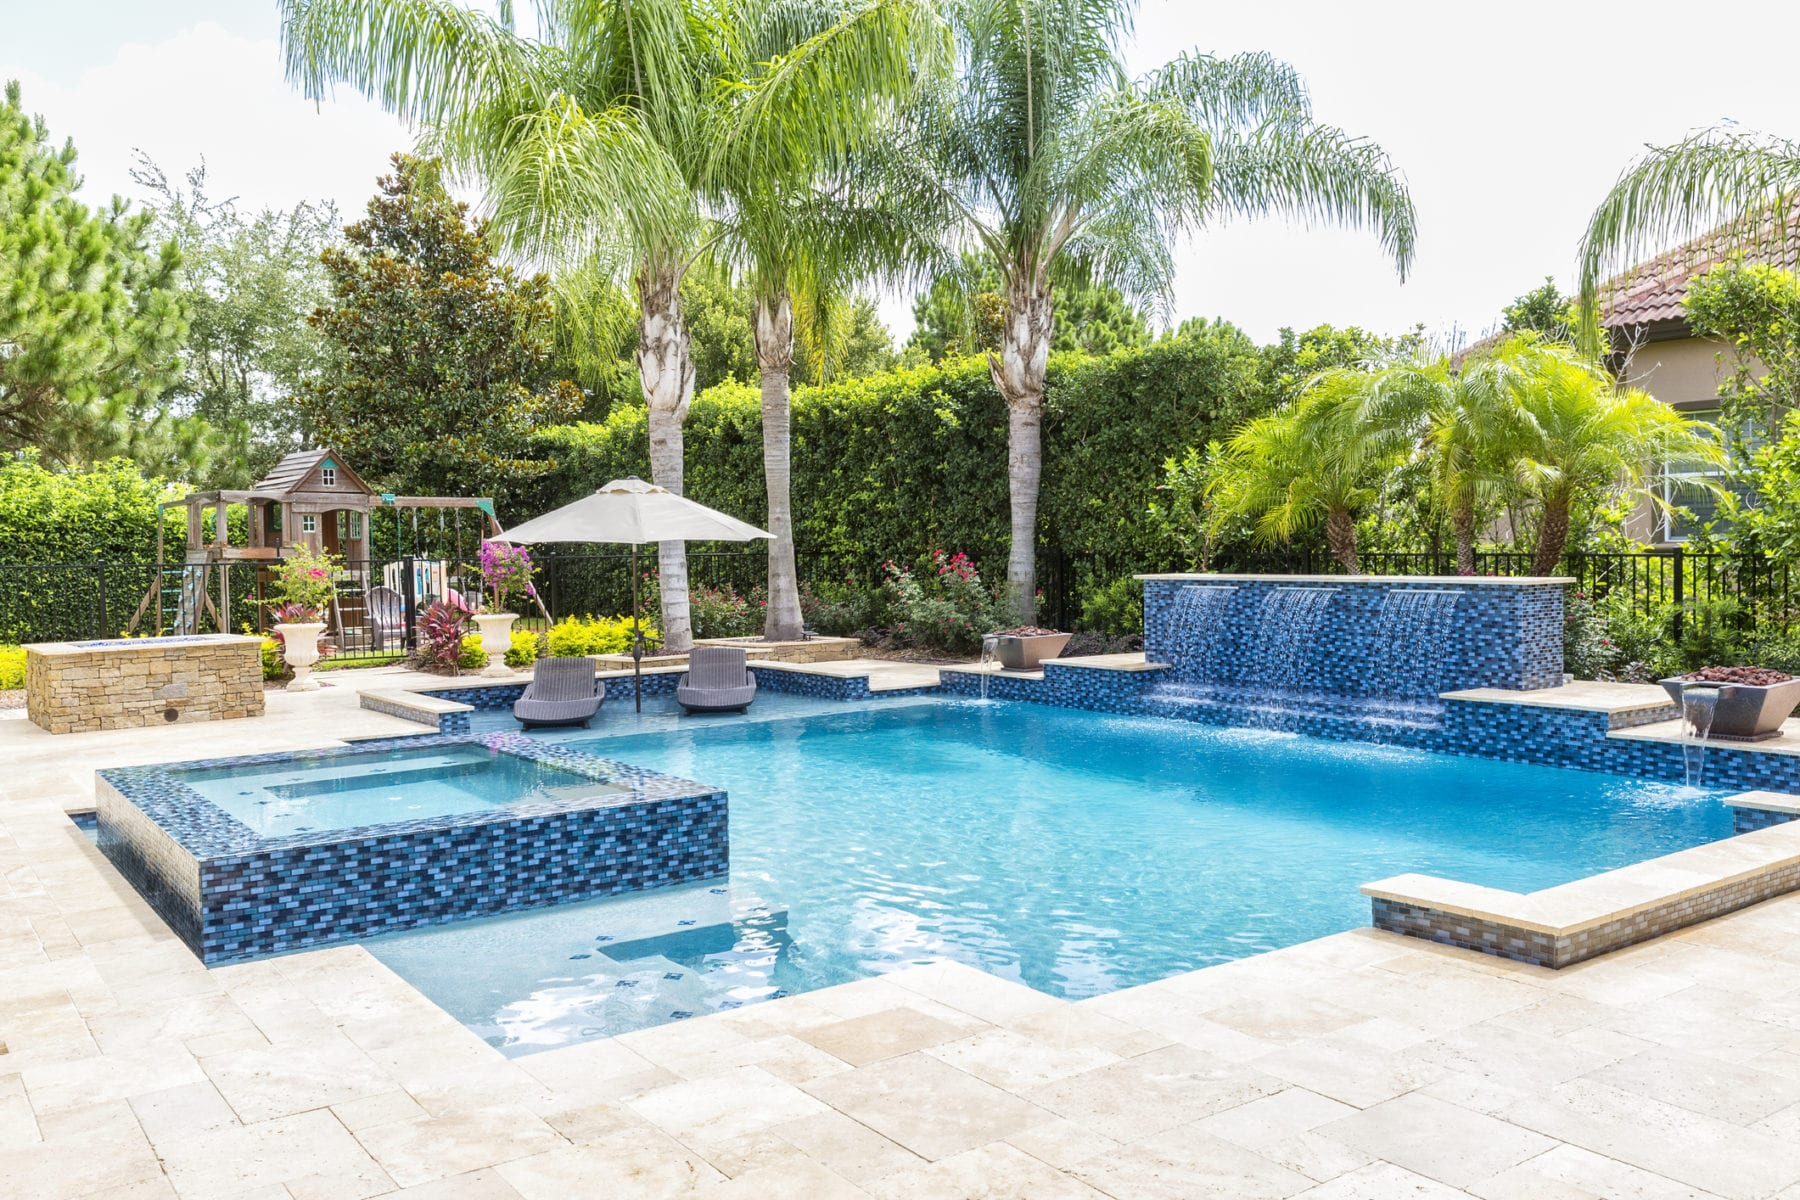 5 Great Pool Renovations to Consider This Year -